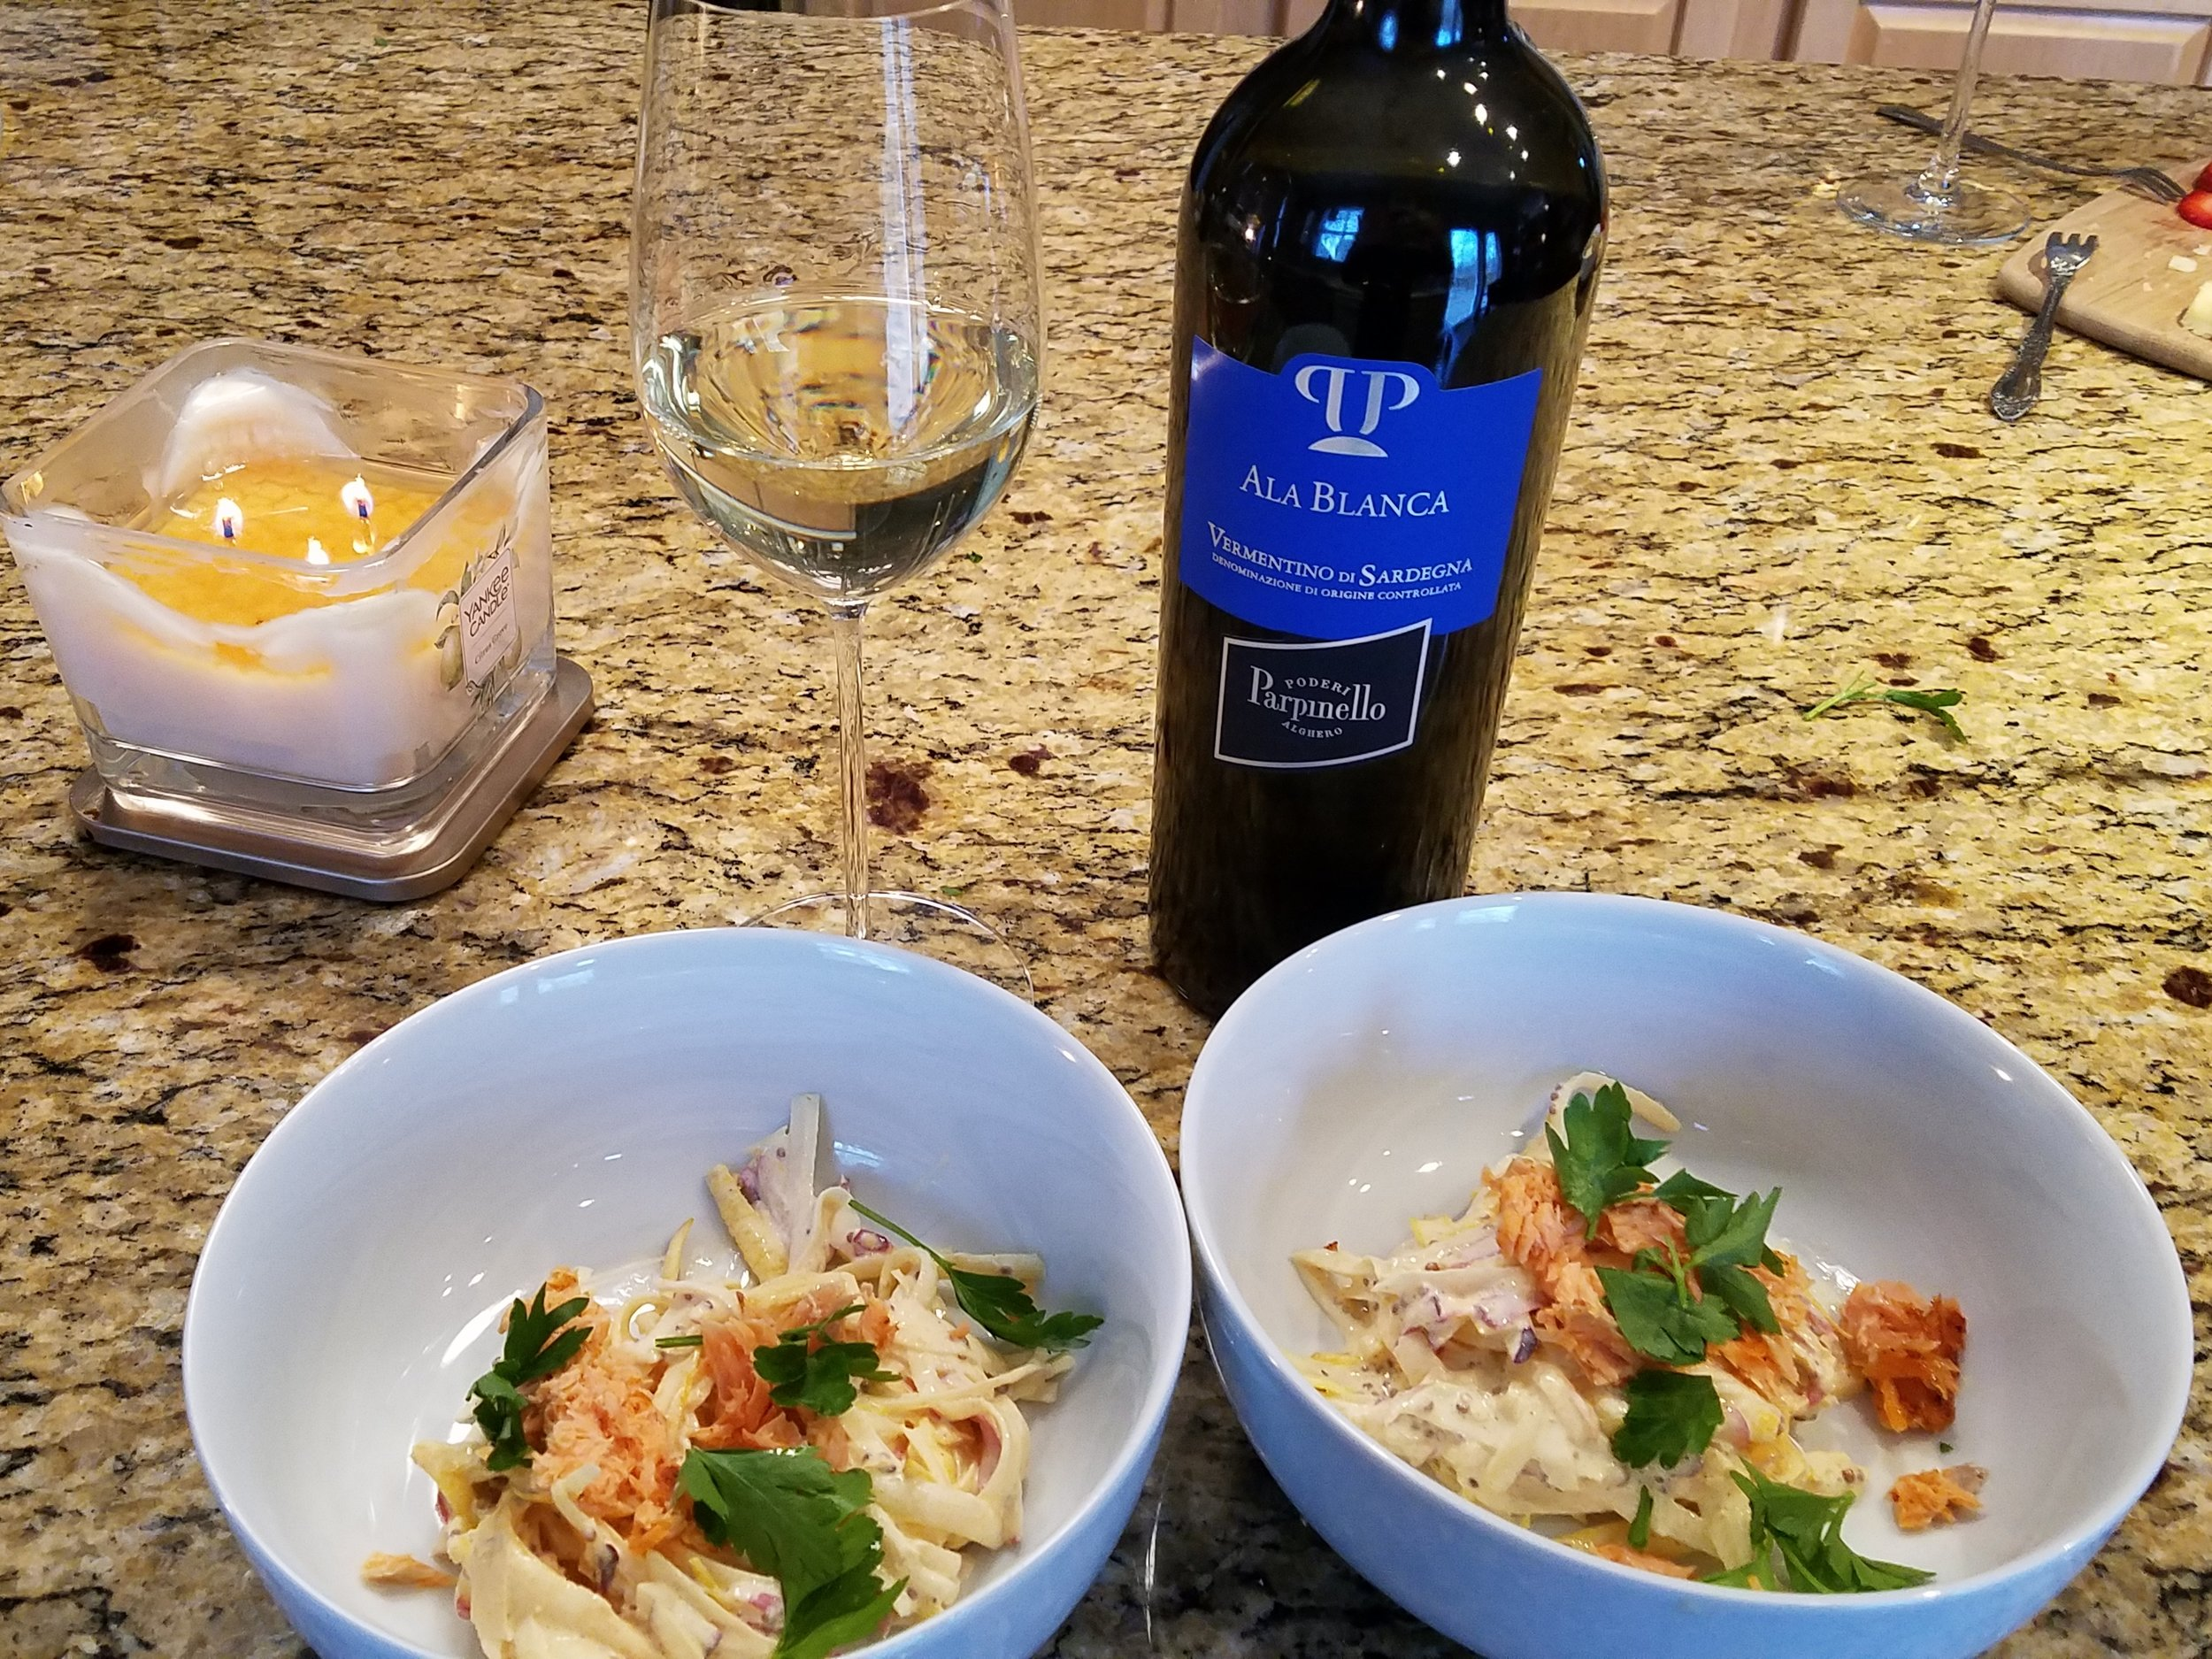 Roots Rémoulade with Smoked Salmon  paired with Ala Blanca Vermentino